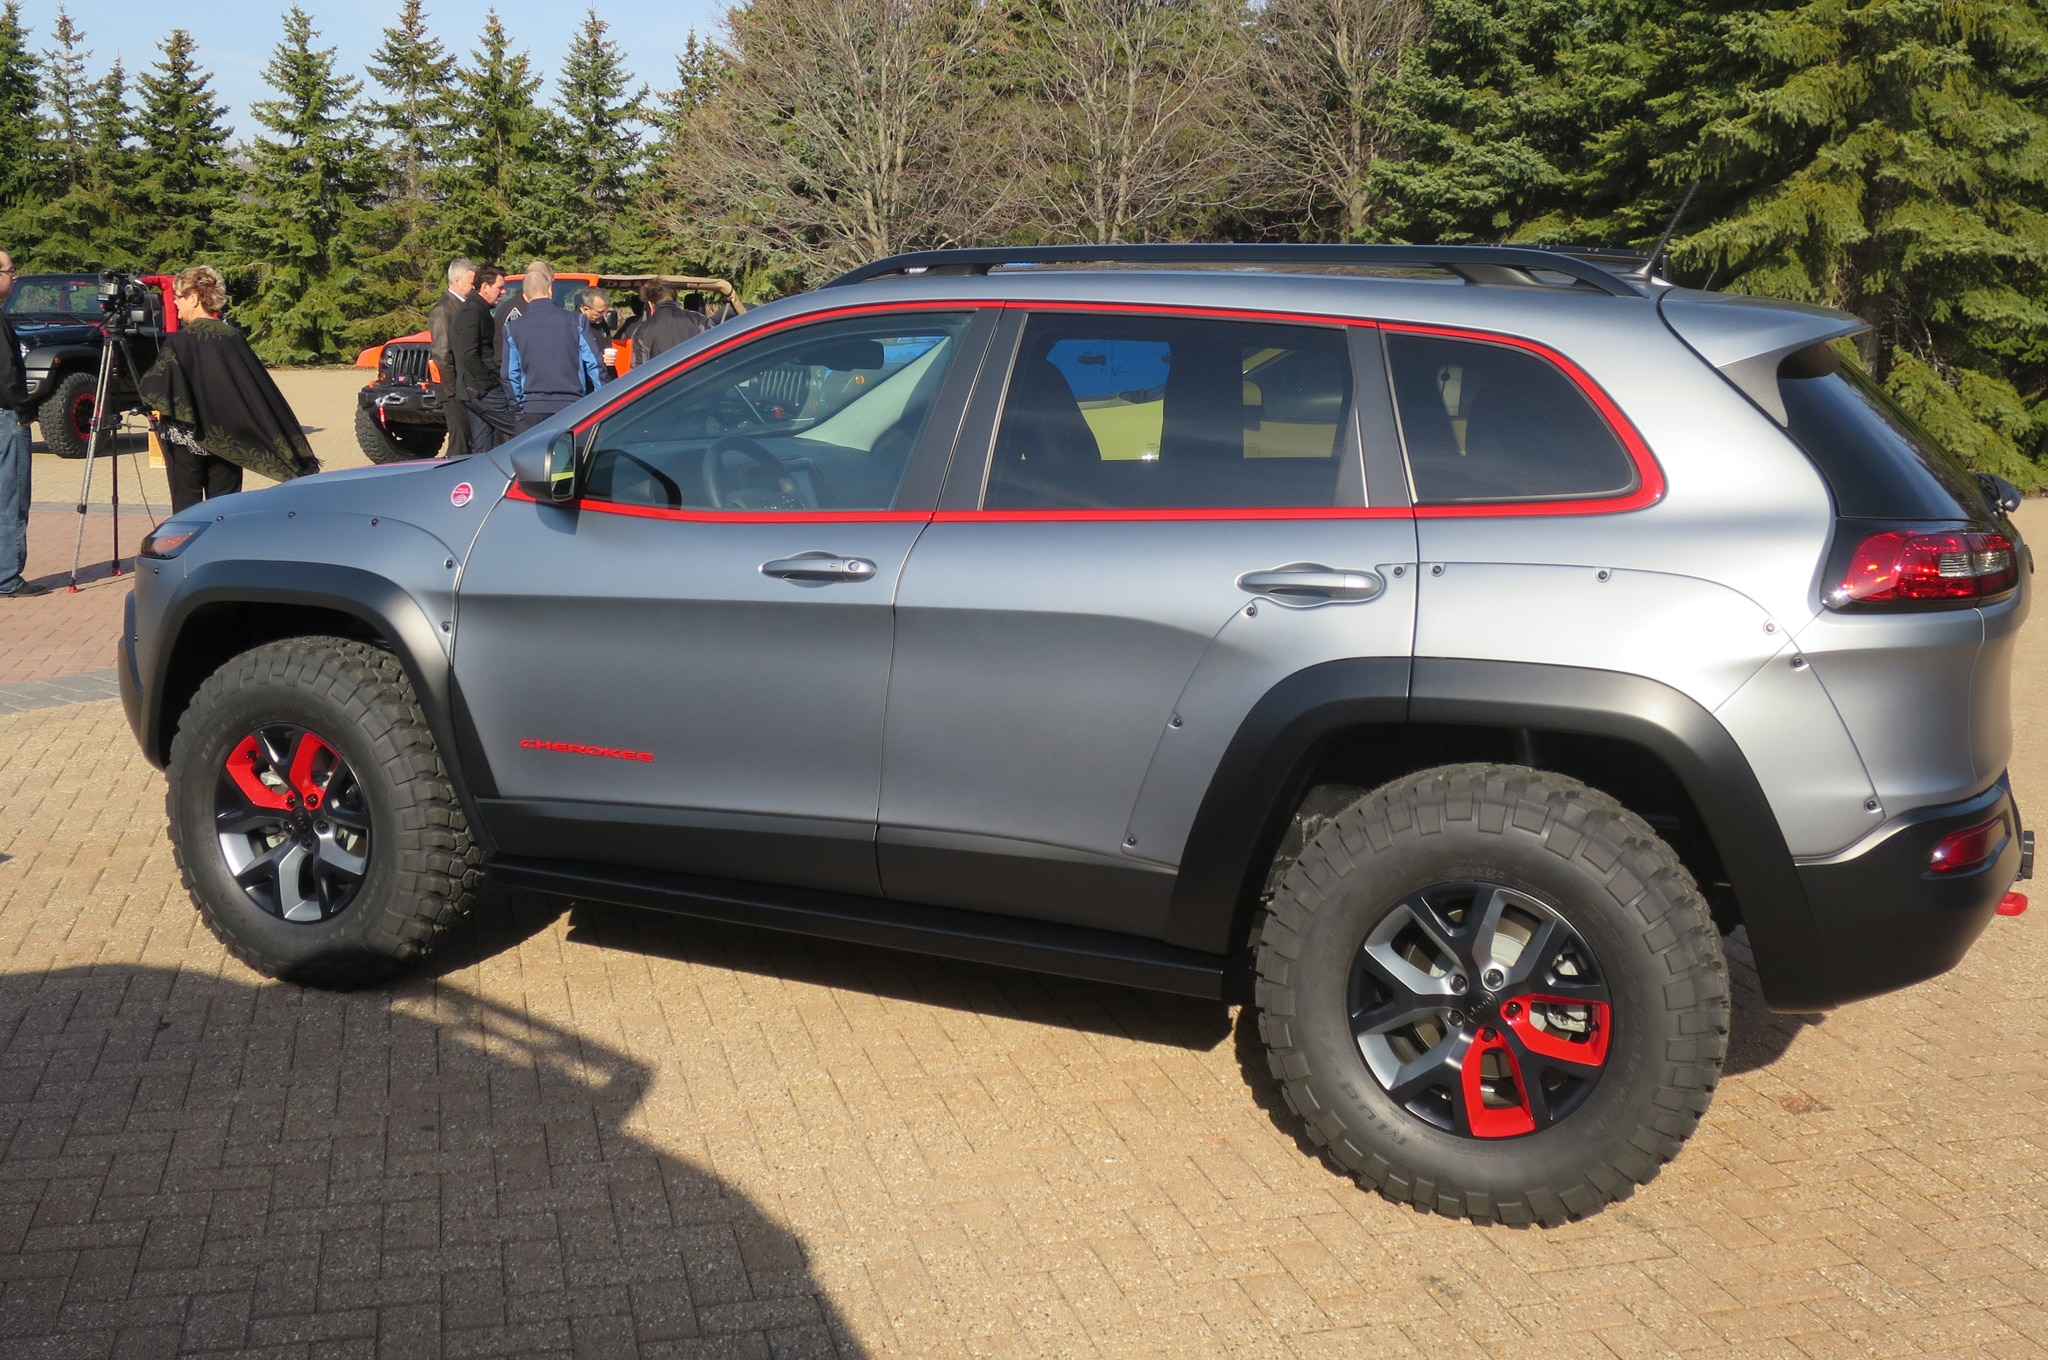 Jeep Cherokee Dakar Concept side profile